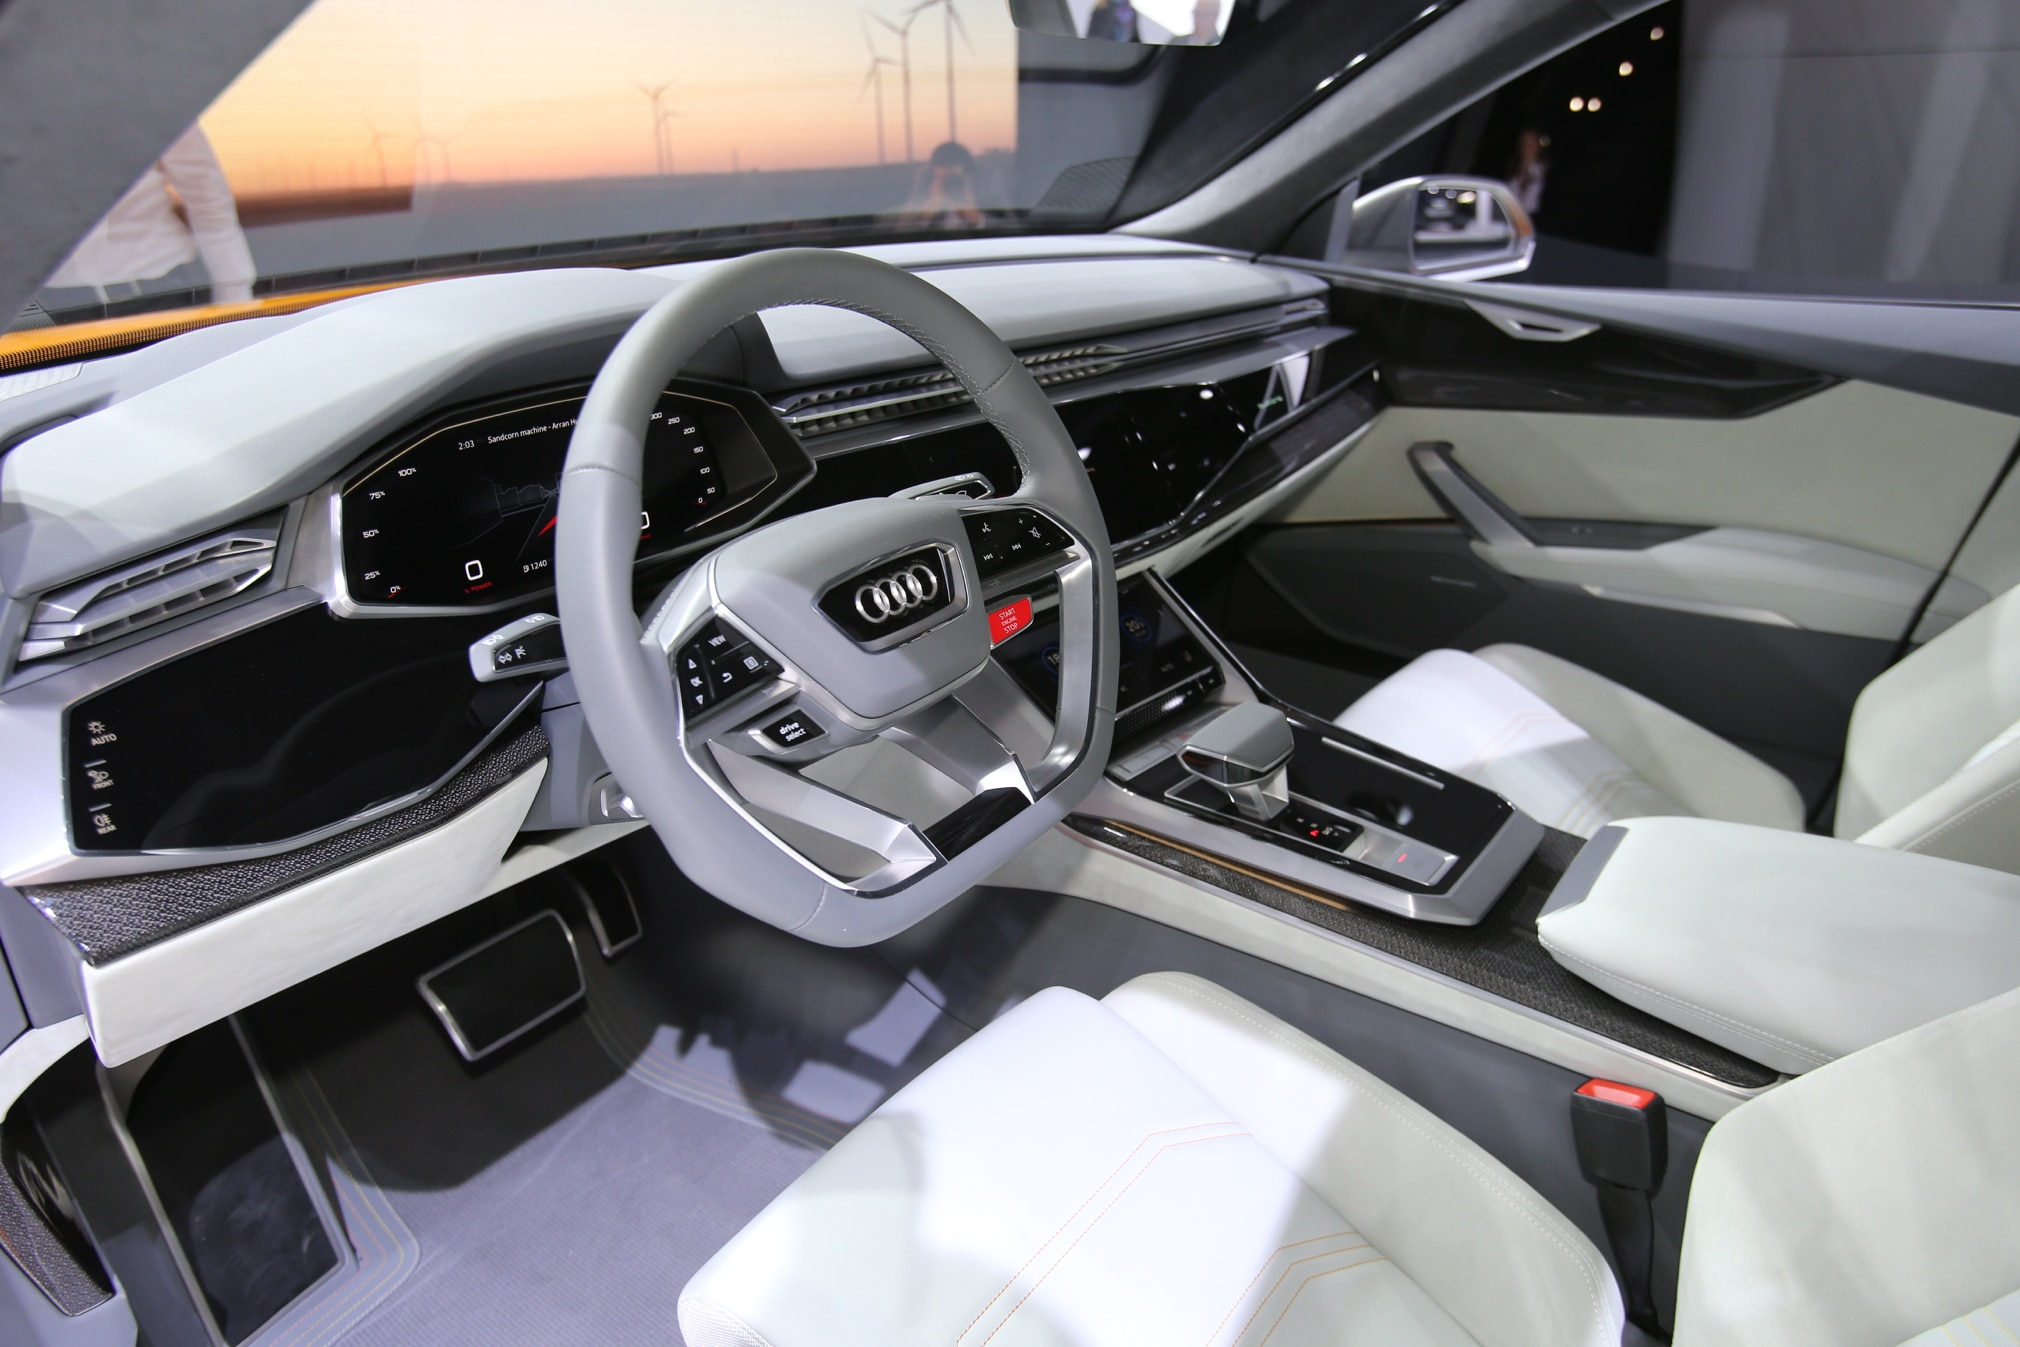 Audi Q >> By Design: Audi Q8 Concept | Automobile Magazine